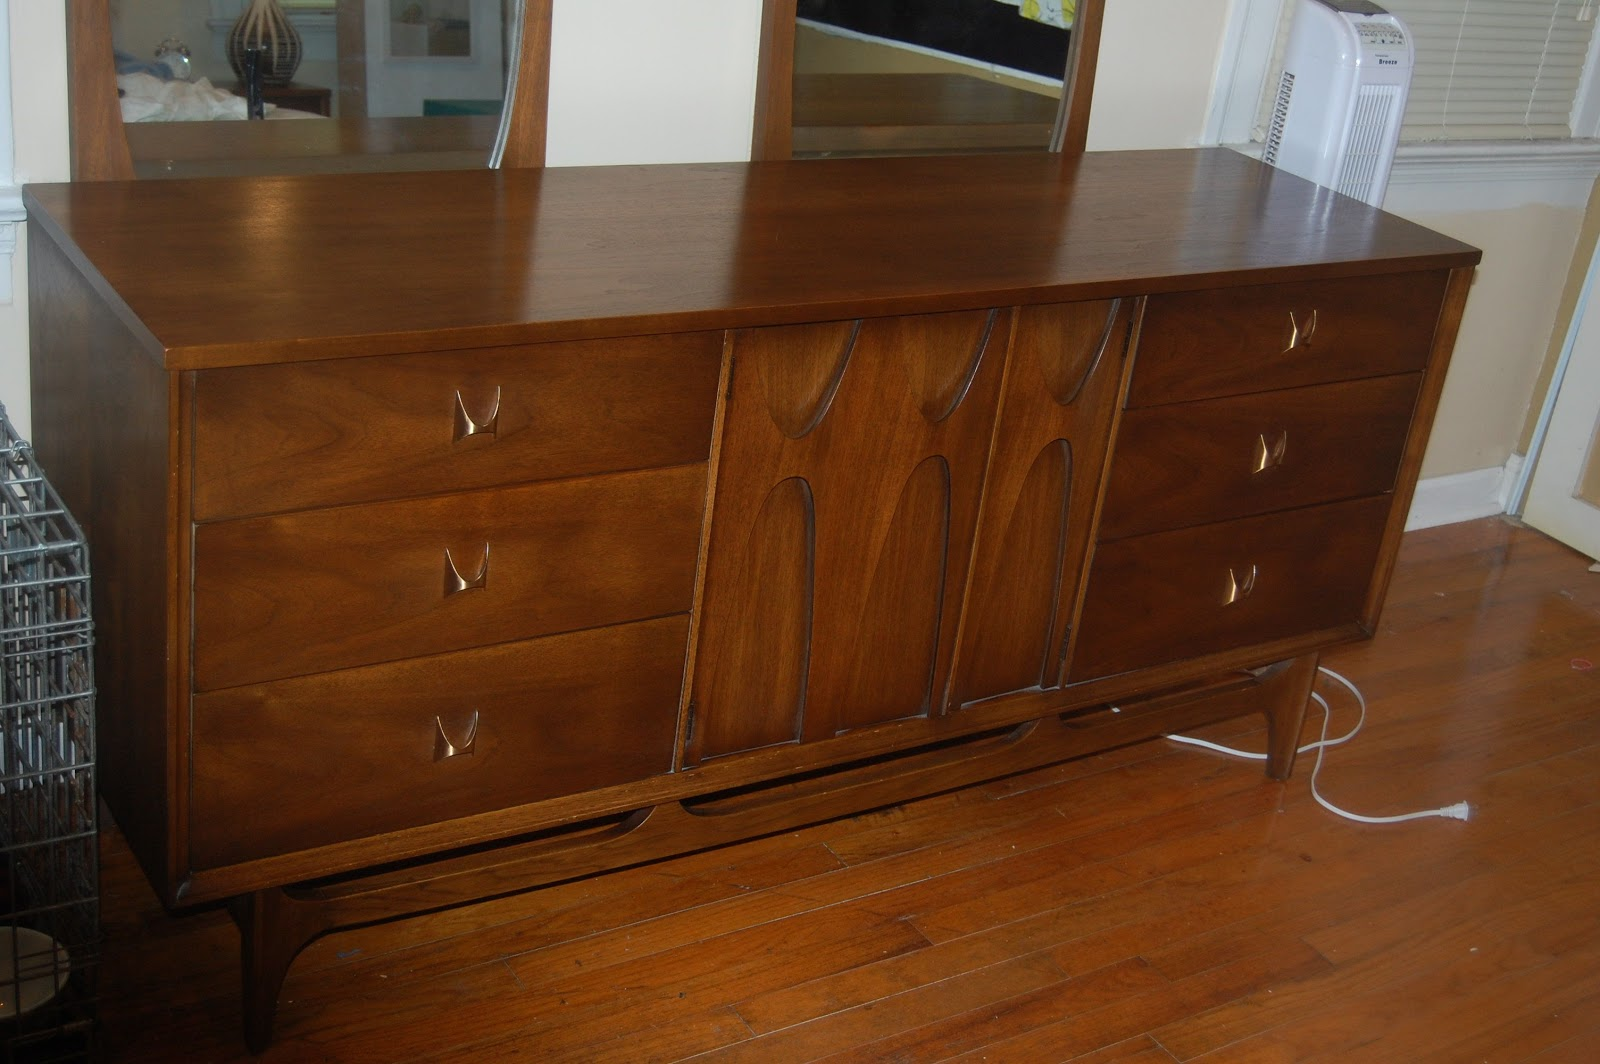 Broyhill Brasilia Triple Dresser With Two Single Arch Mirrors 360 I Didn T Really Want To Pay This Much For It But Was Expecting The Nightstand And